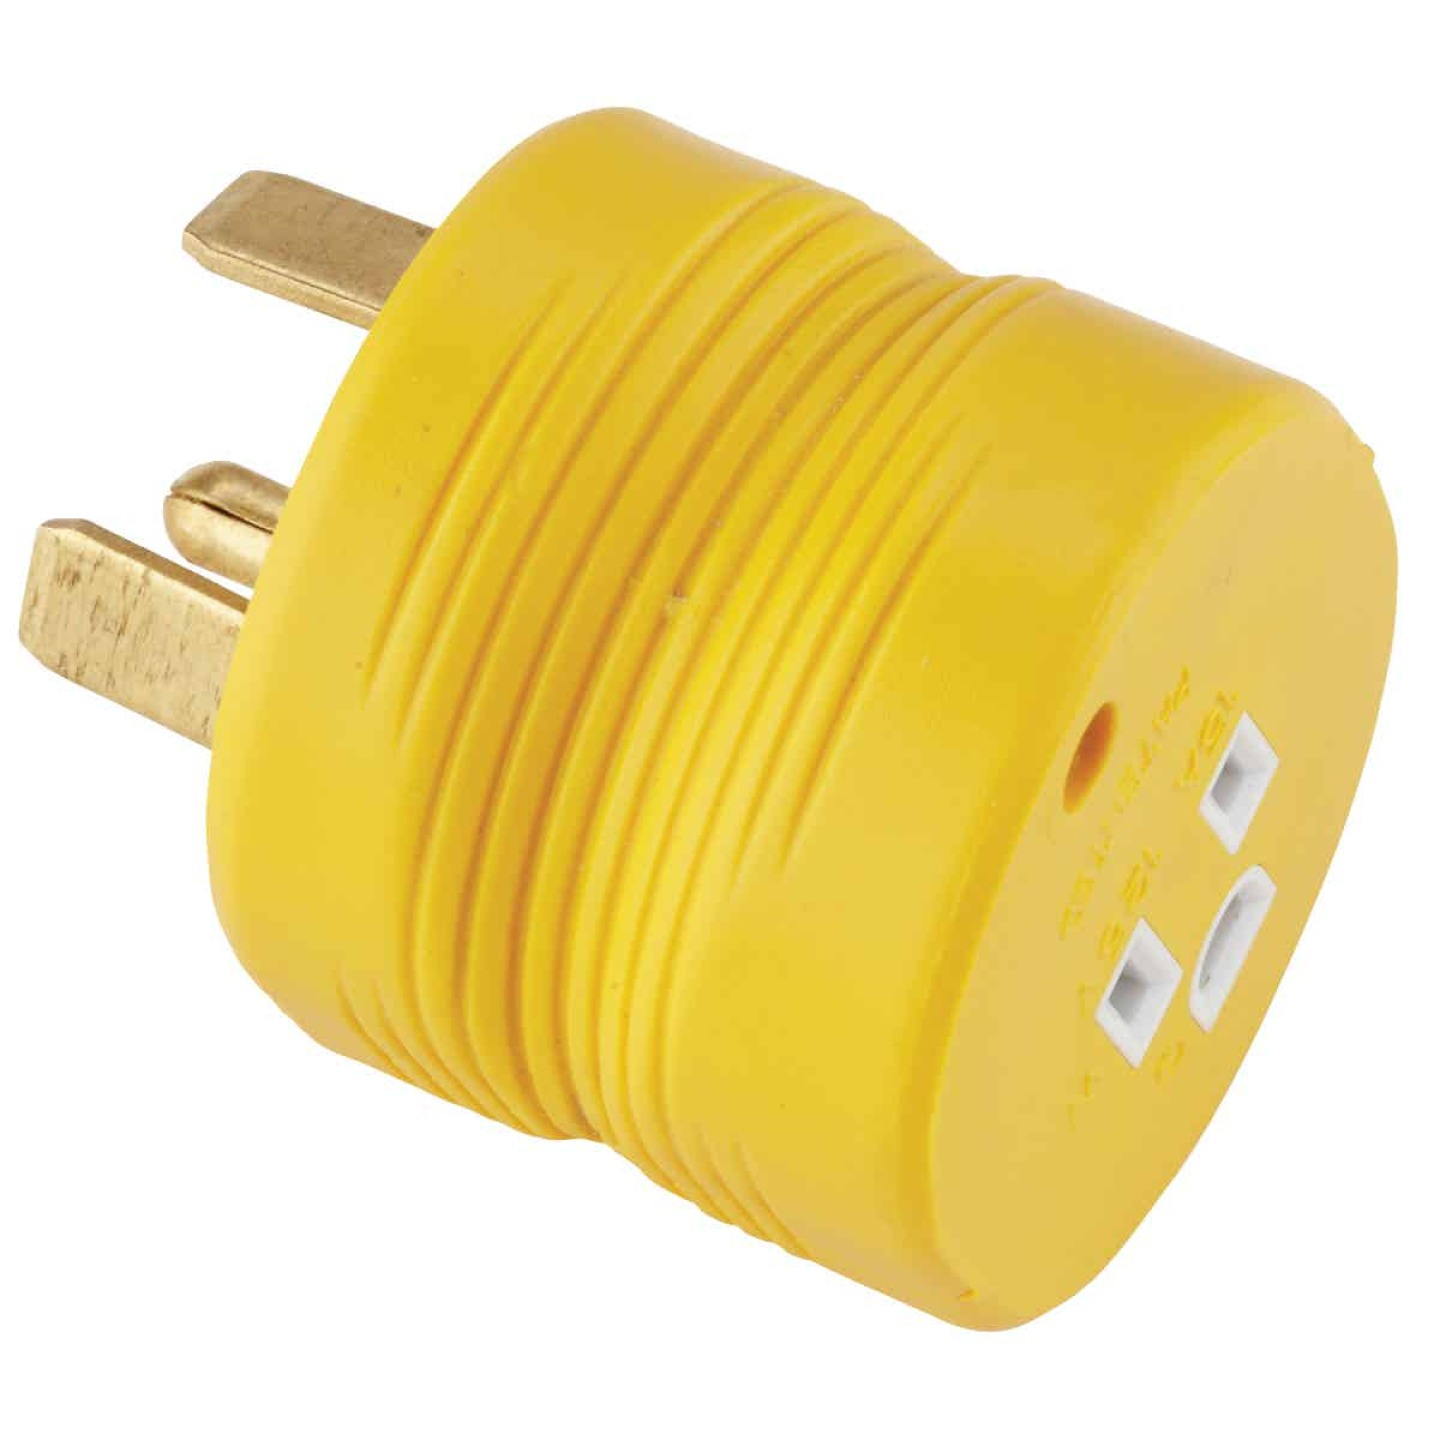 Camco Power Grip 30A Male to 15A Female RV Plug Adapter Image 1